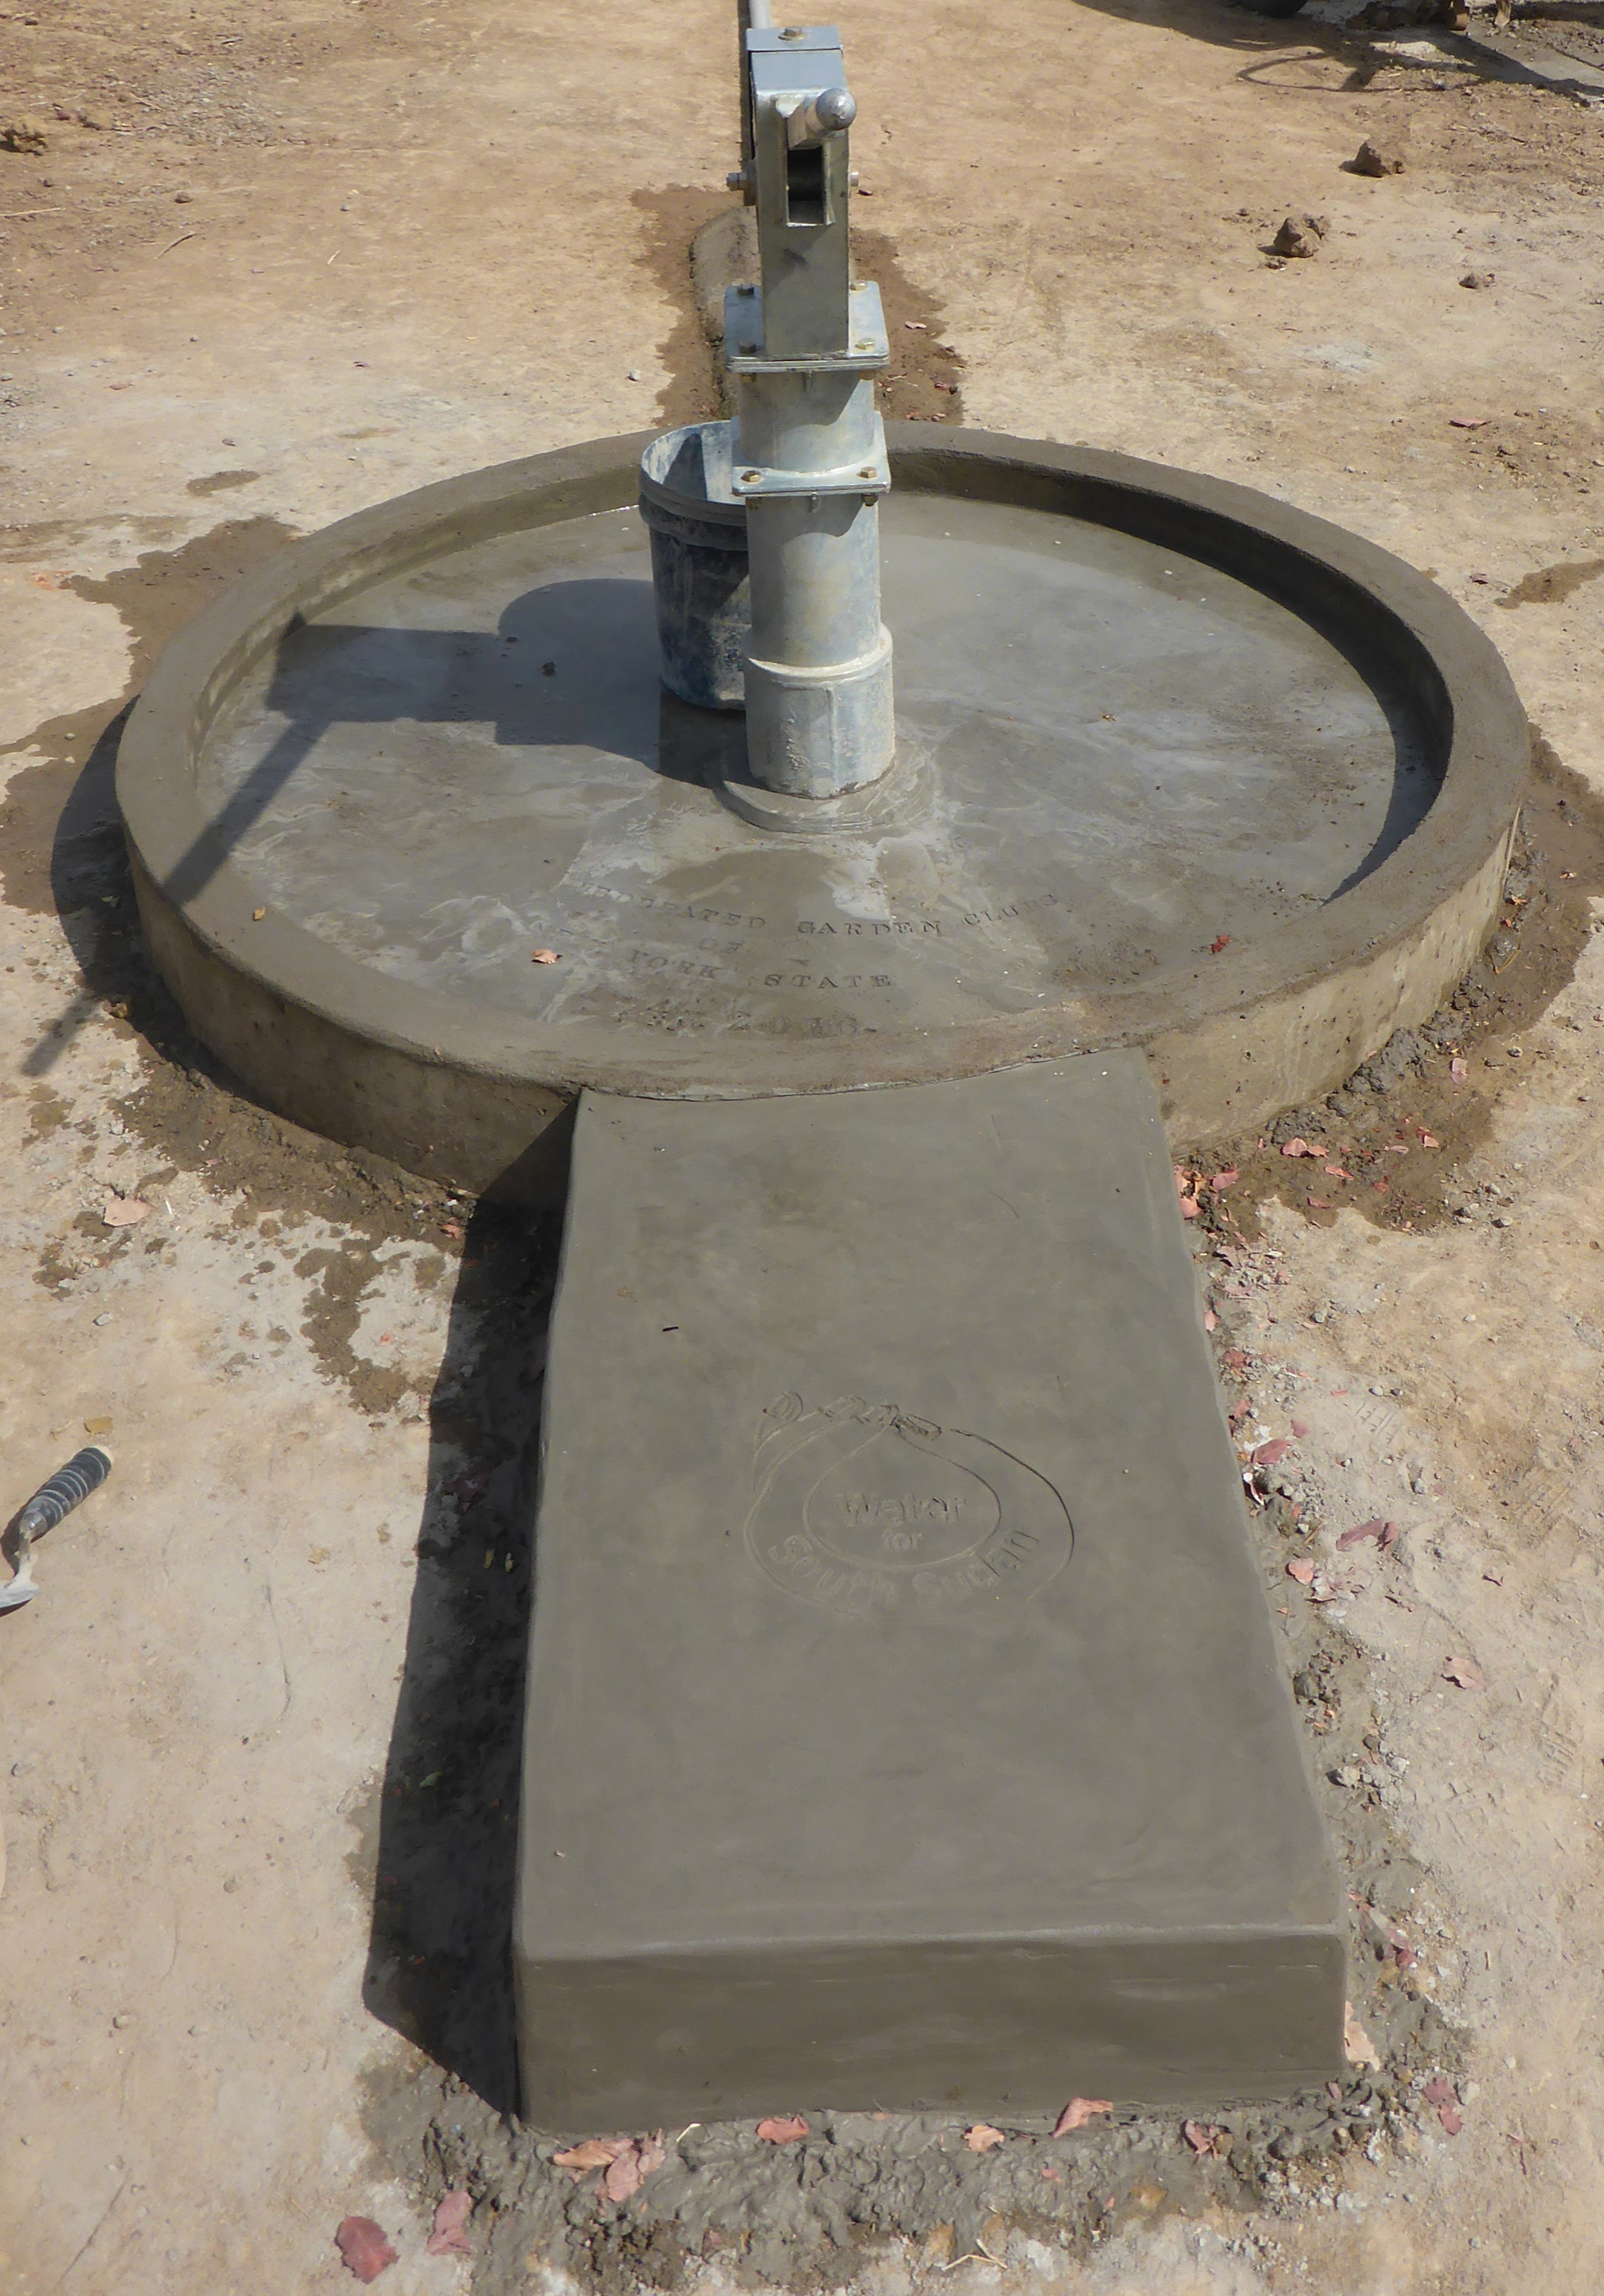 new well installed in 2016